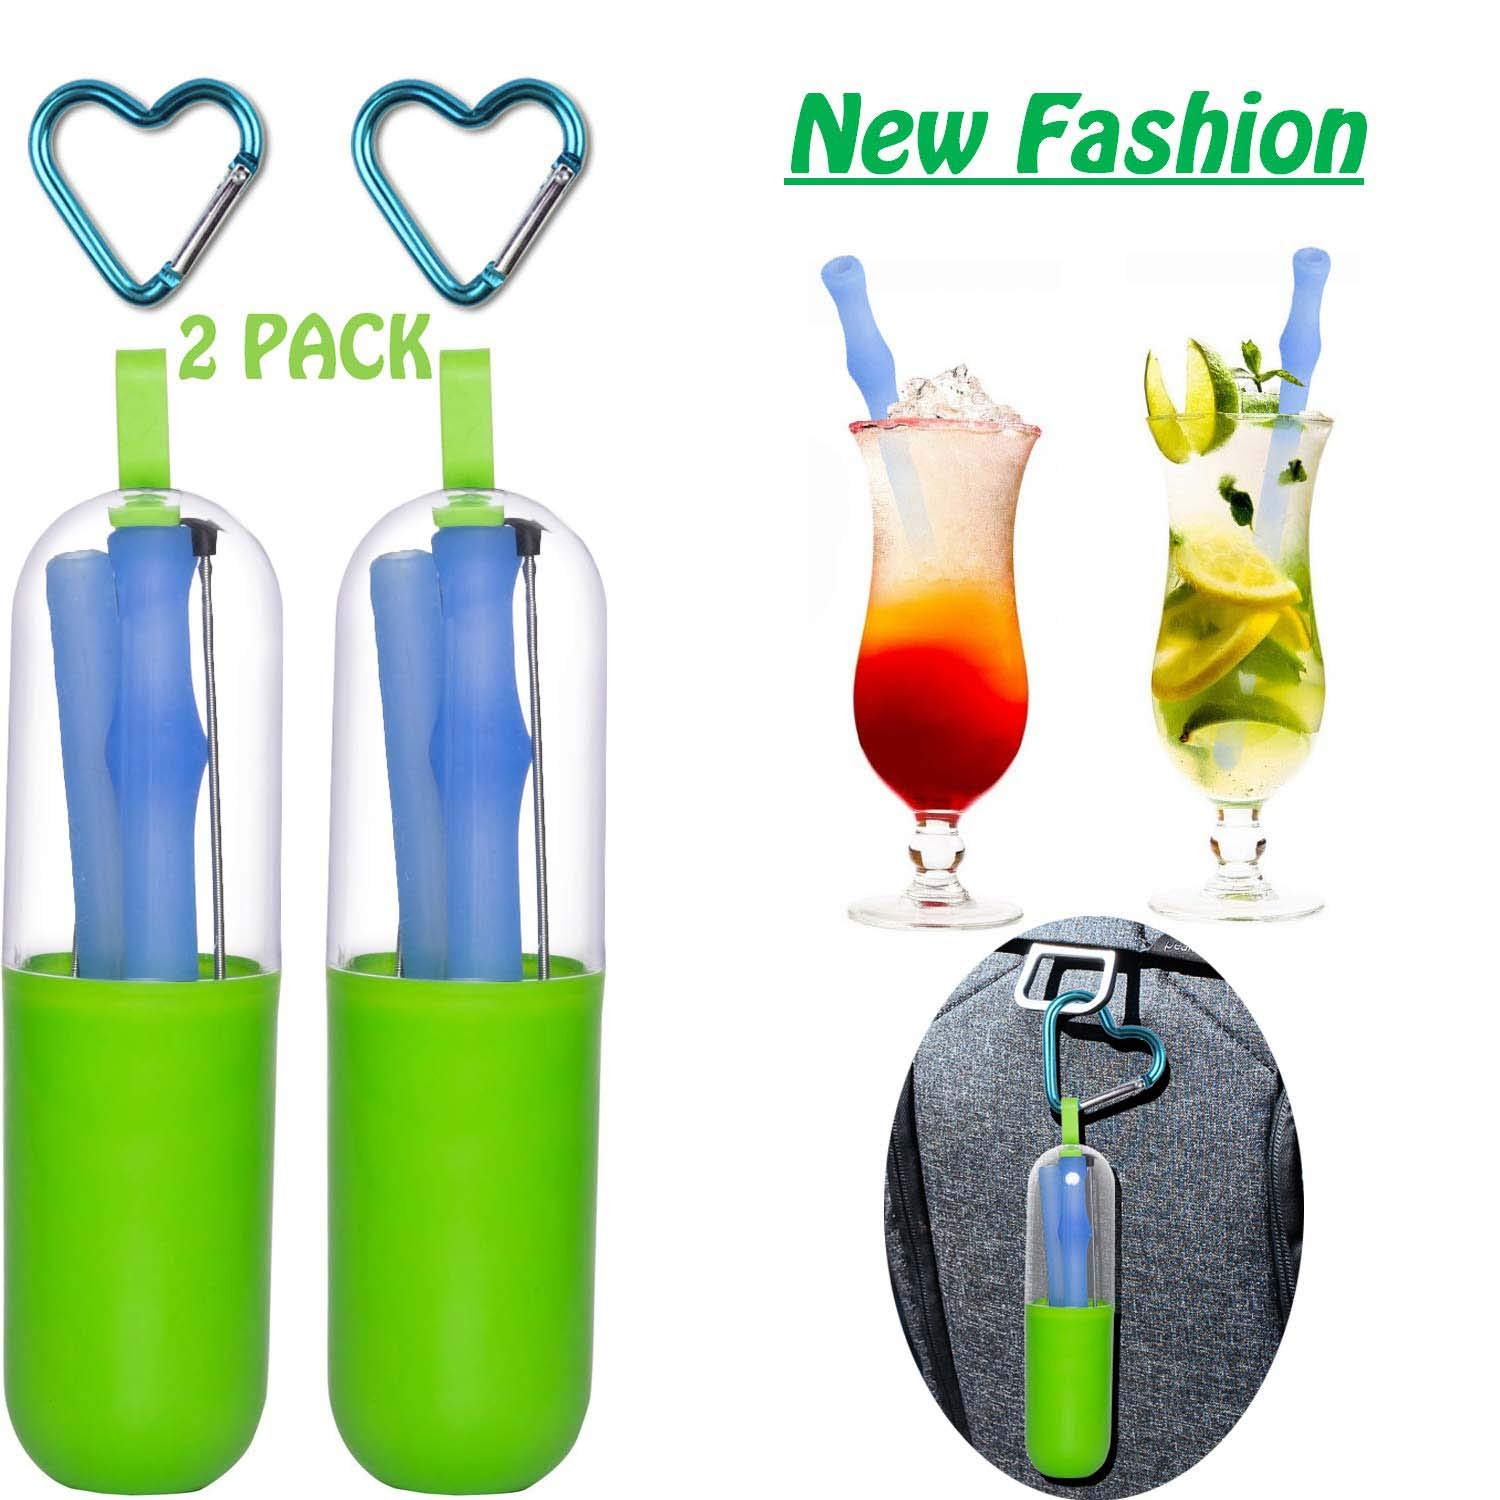 Silicone Drinking Straws Joyhill Reusable Portable Collapsible Straws with 4 Cases /& 4 Cleaning Brushes BPA Free 30/&20 oz Tumbler Compatible Gift for Travel,Office